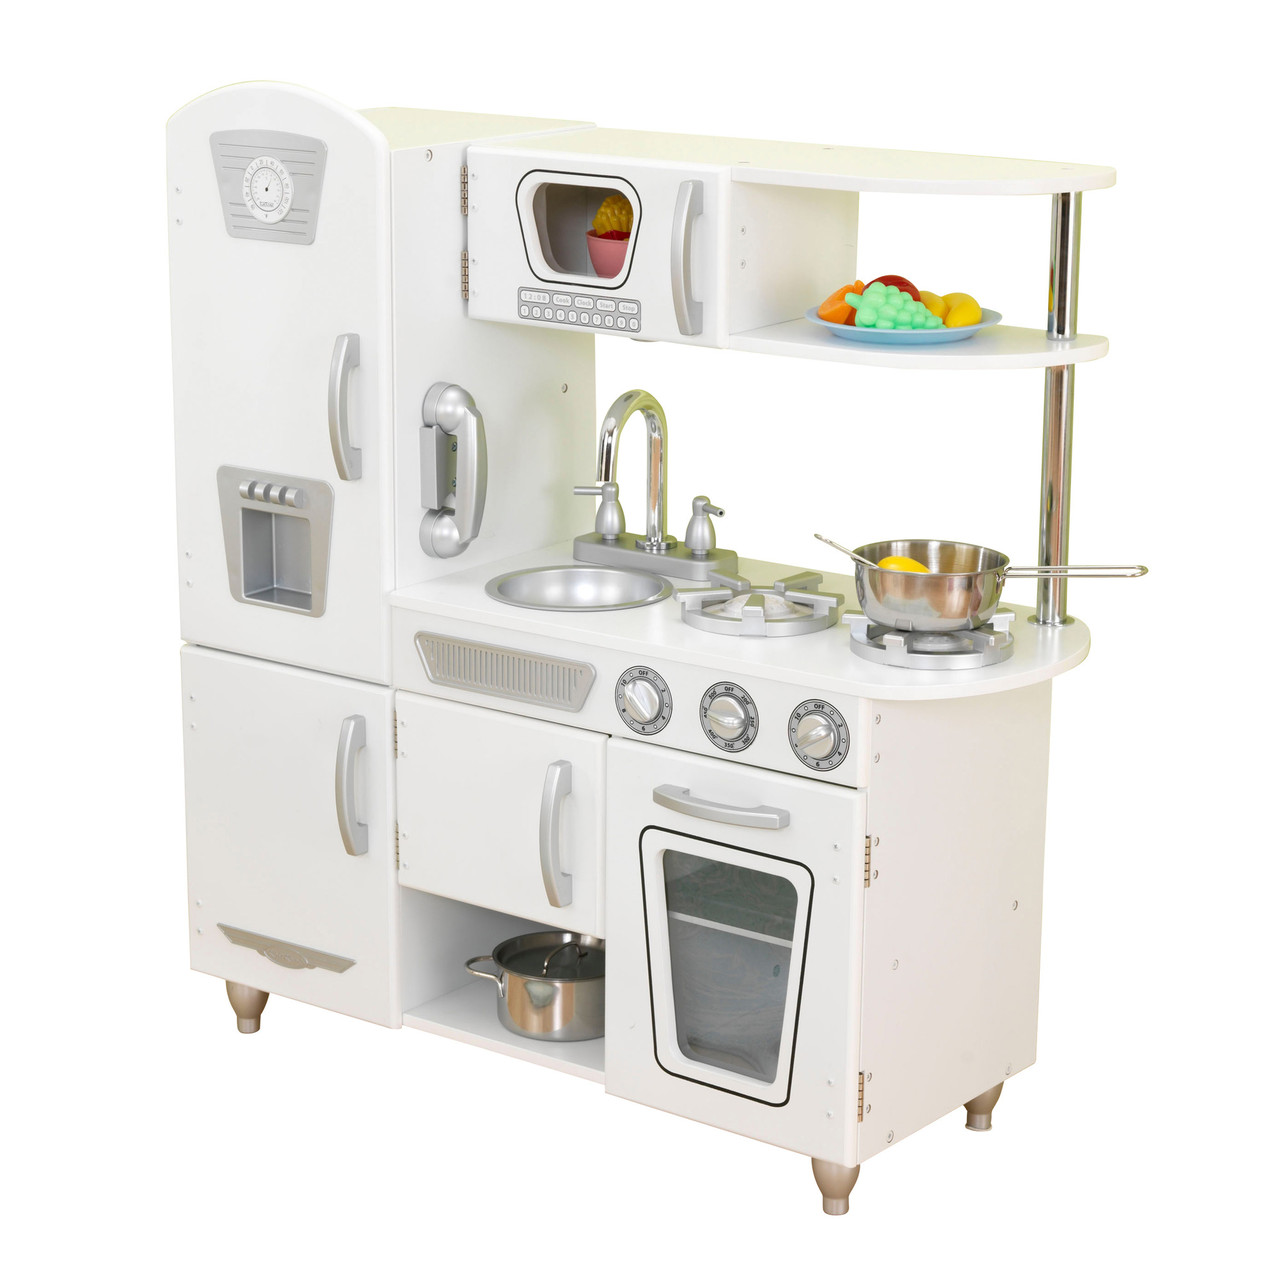 Vintage Kitchen By Kidkraft: KidKraft White Vintage Kitchen On Sale Now! Fast Shipping Australia Wide